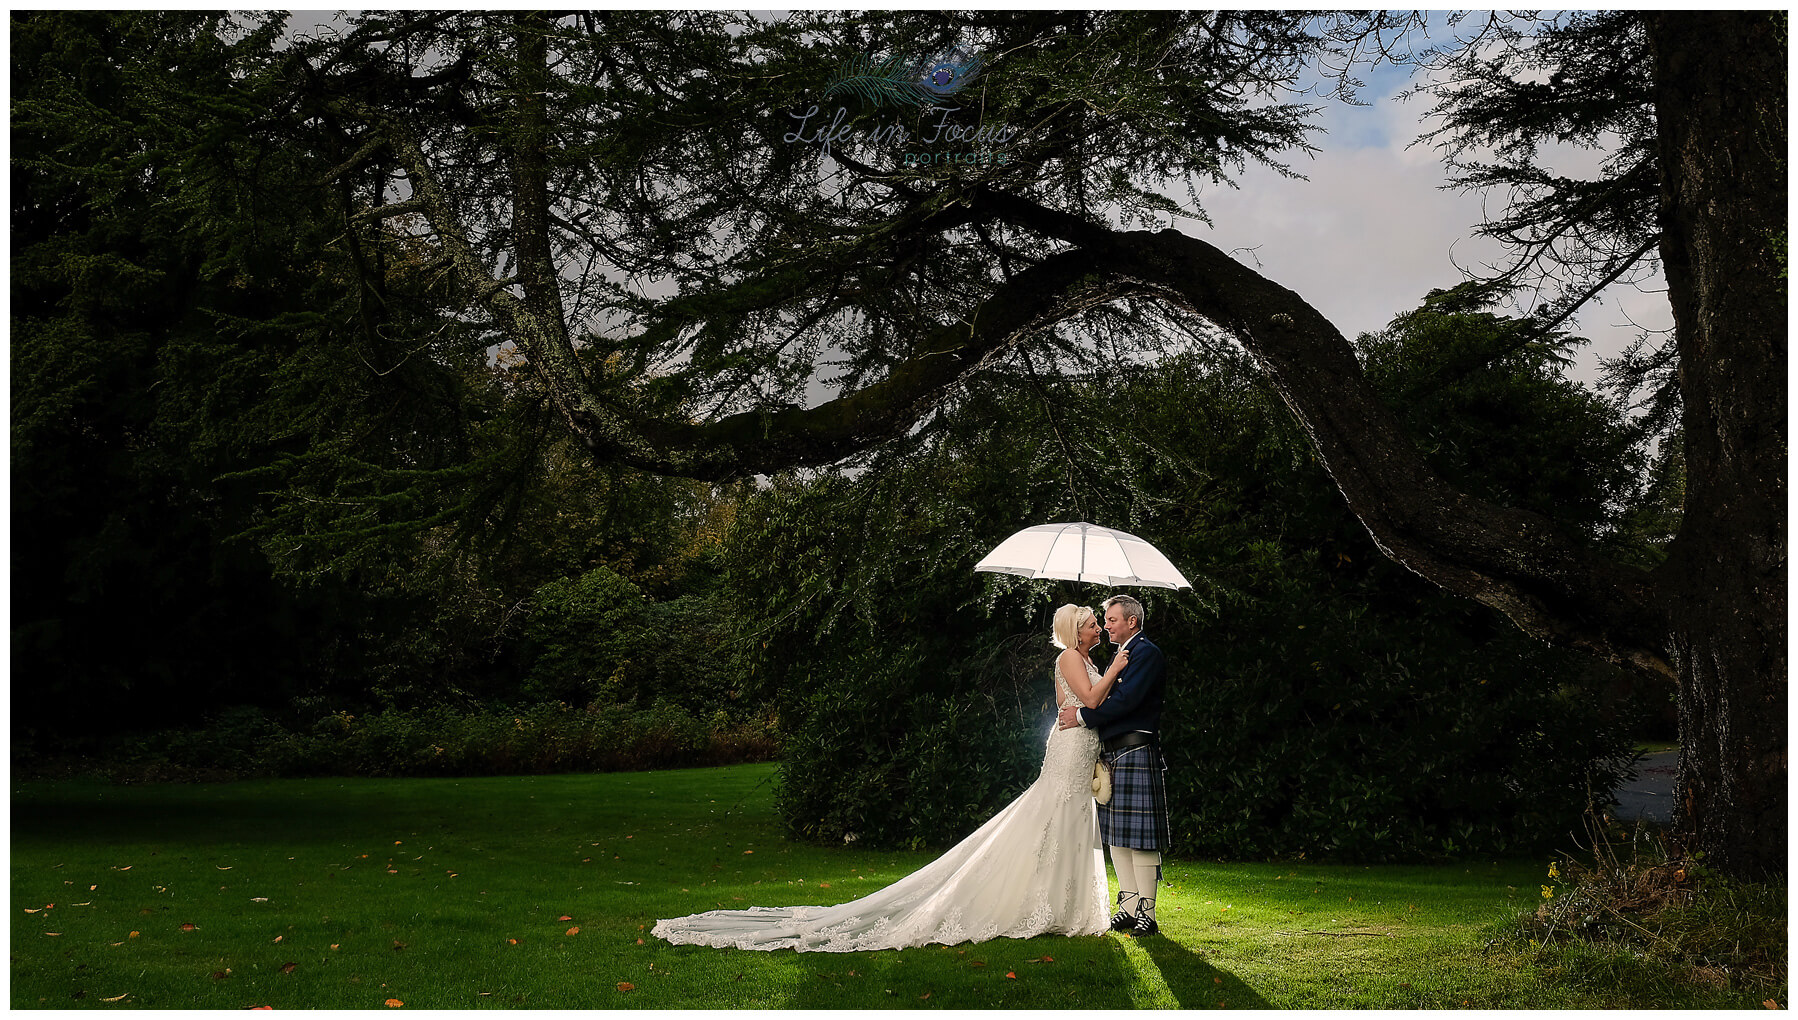 Bride and Groom embrace under umbrella Helensburgh Elopement Wedding